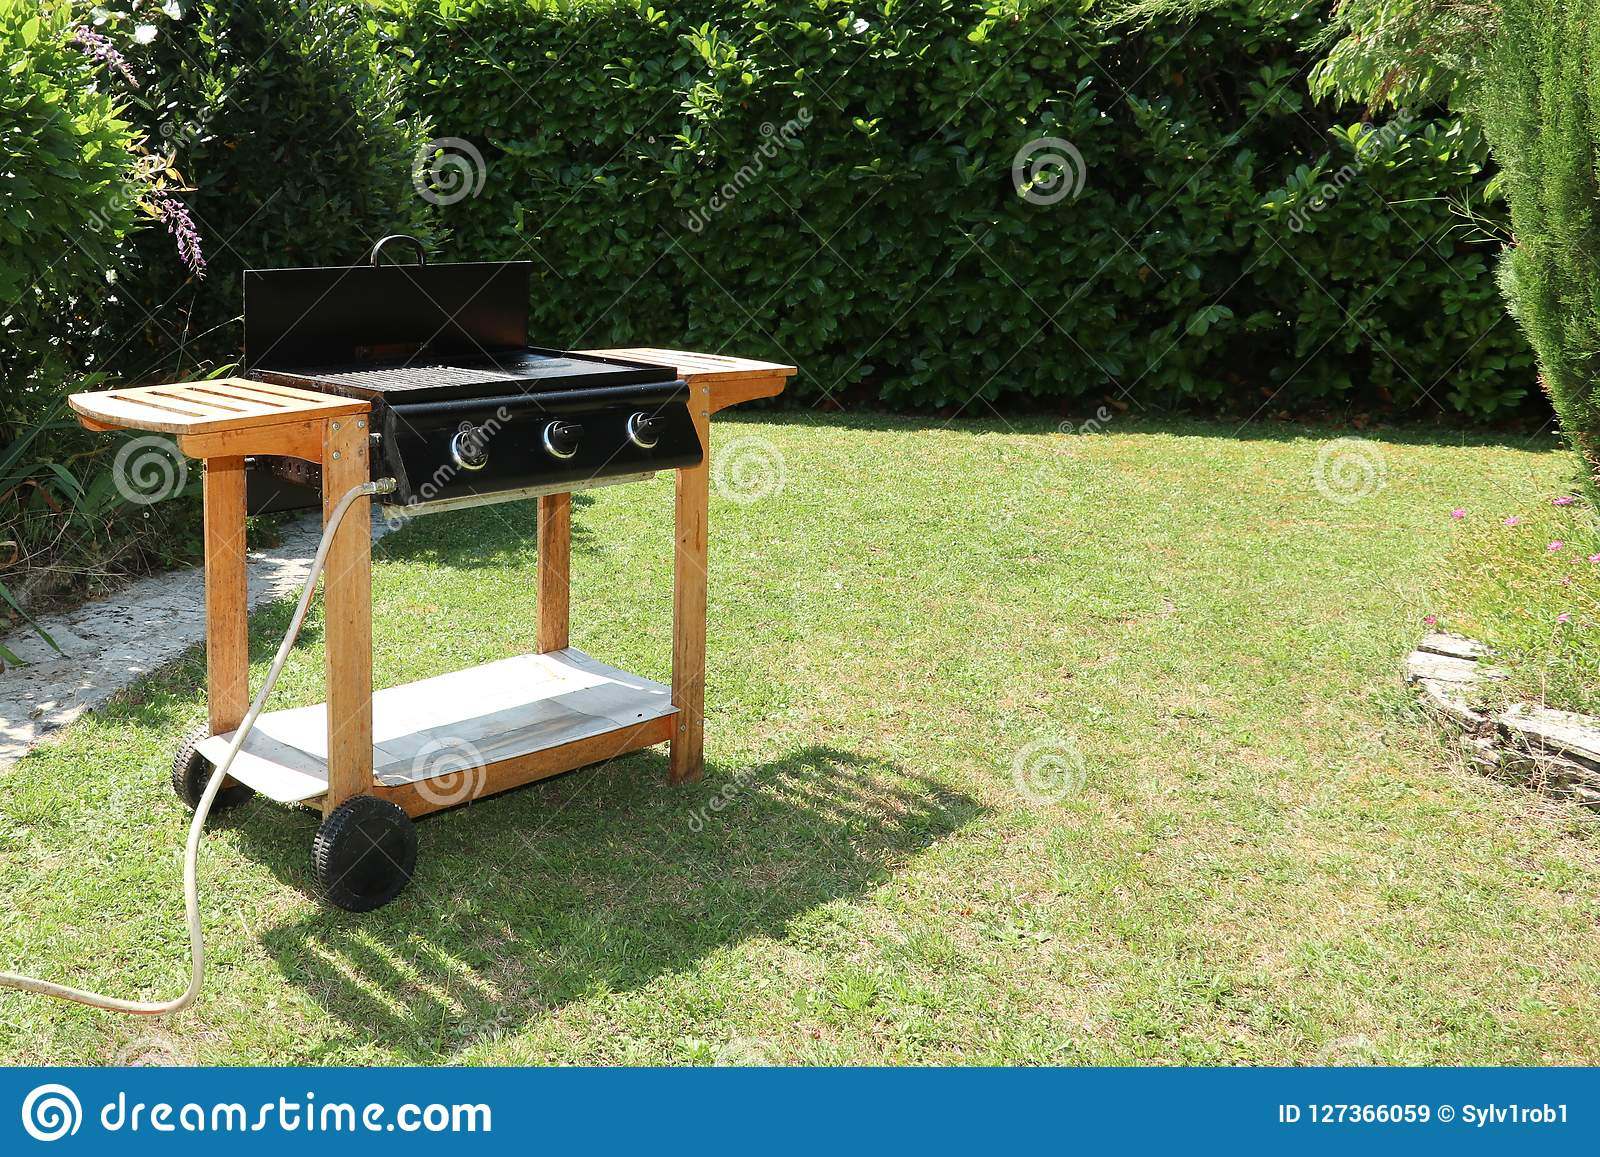 Barbecue grilled in the garden